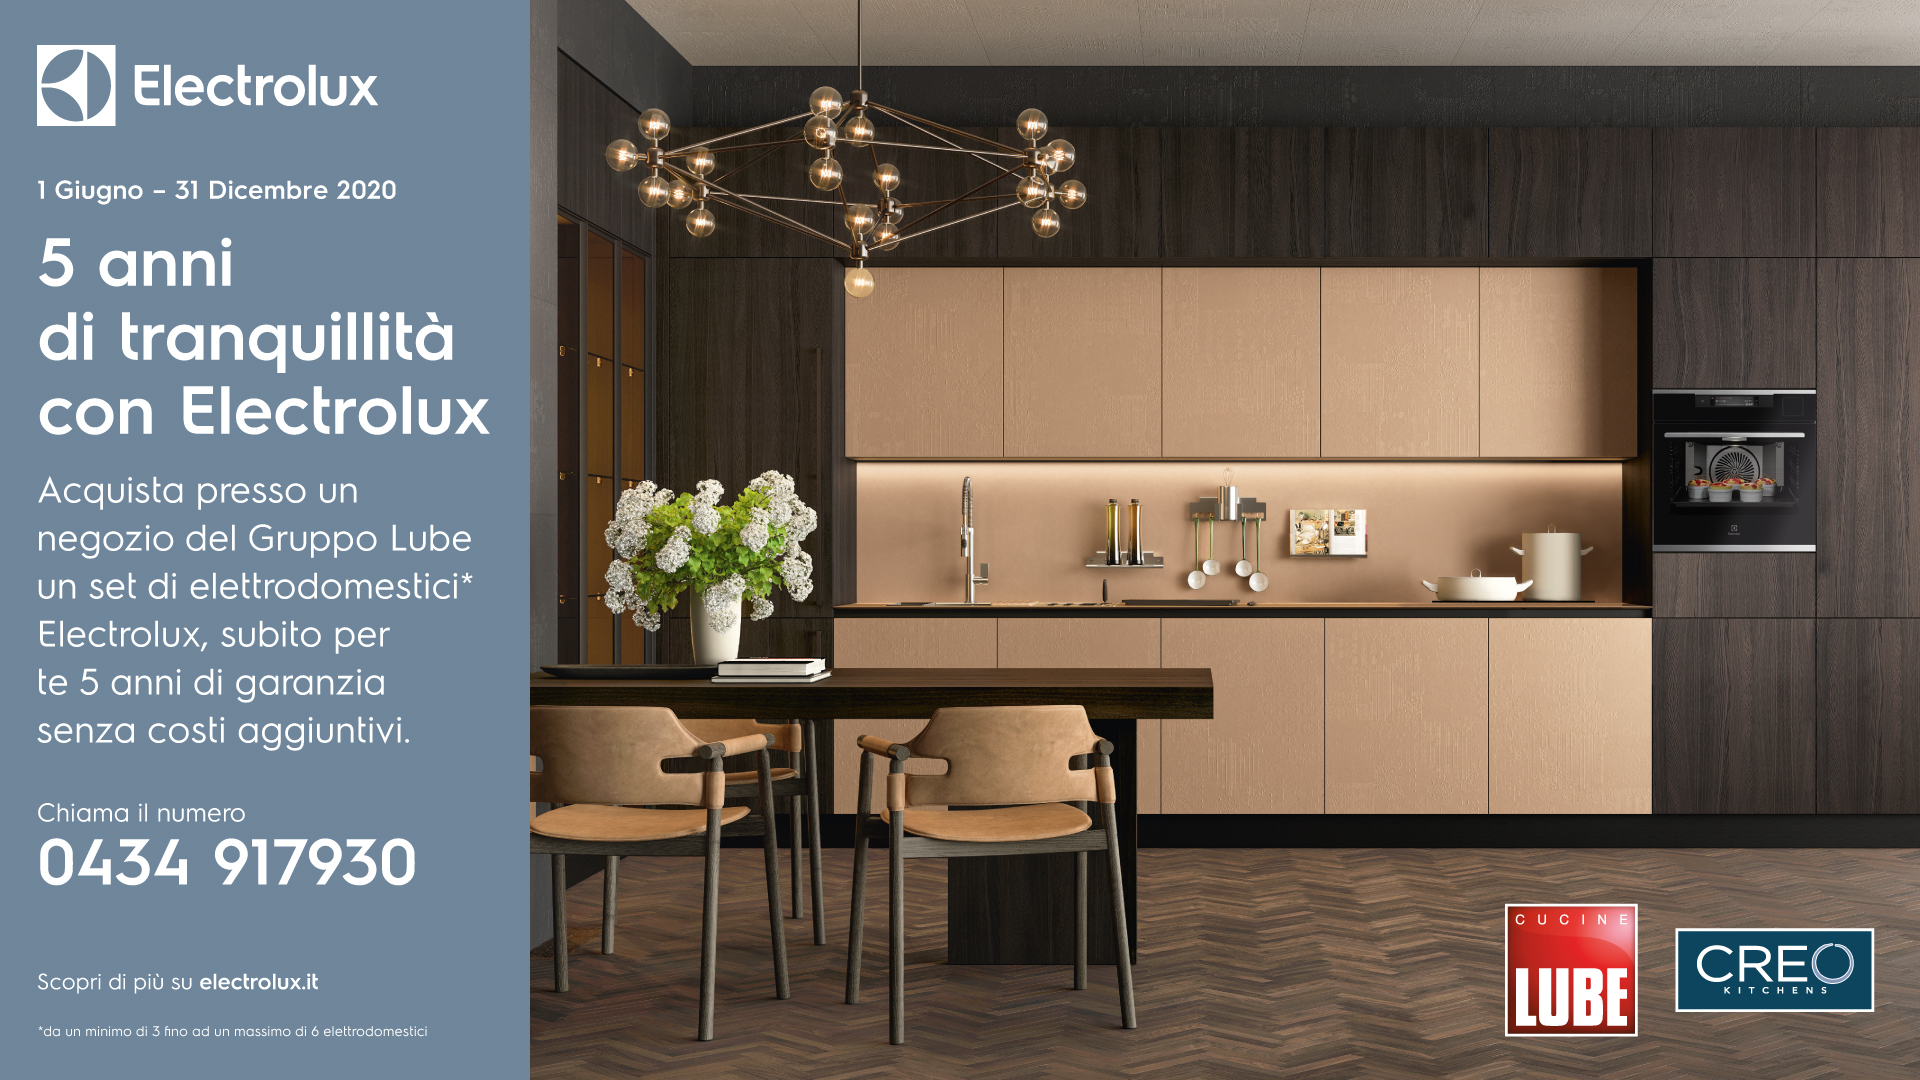 5 years' peace of mind with Electrolux - Cucine LUBE